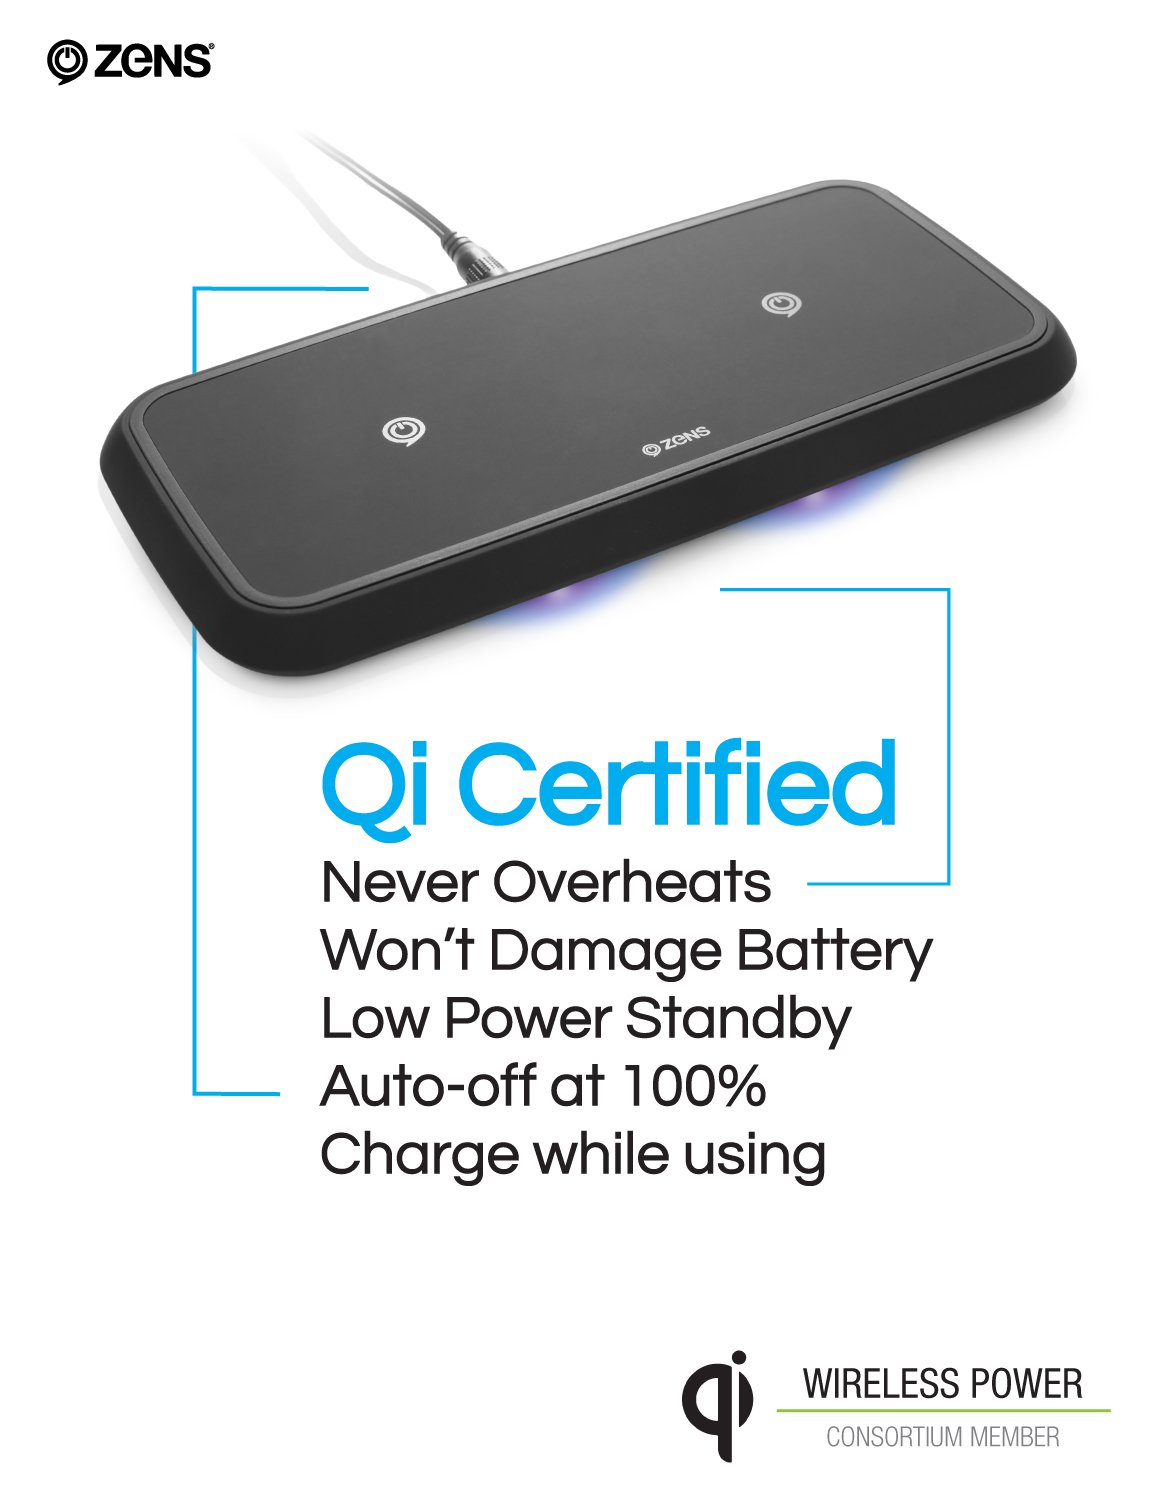 ZENS Wireless Charging Pad | Dual Qi Charger Pad with 2X 15 Watt Power Output | Compatible with Apple iPhone 8/8 Plus/X/XR/Xs Max, Samsung Galaxy S10 and Airpods 2 | Includes AC/DC Adapter | Black by ZENS (Image #6)